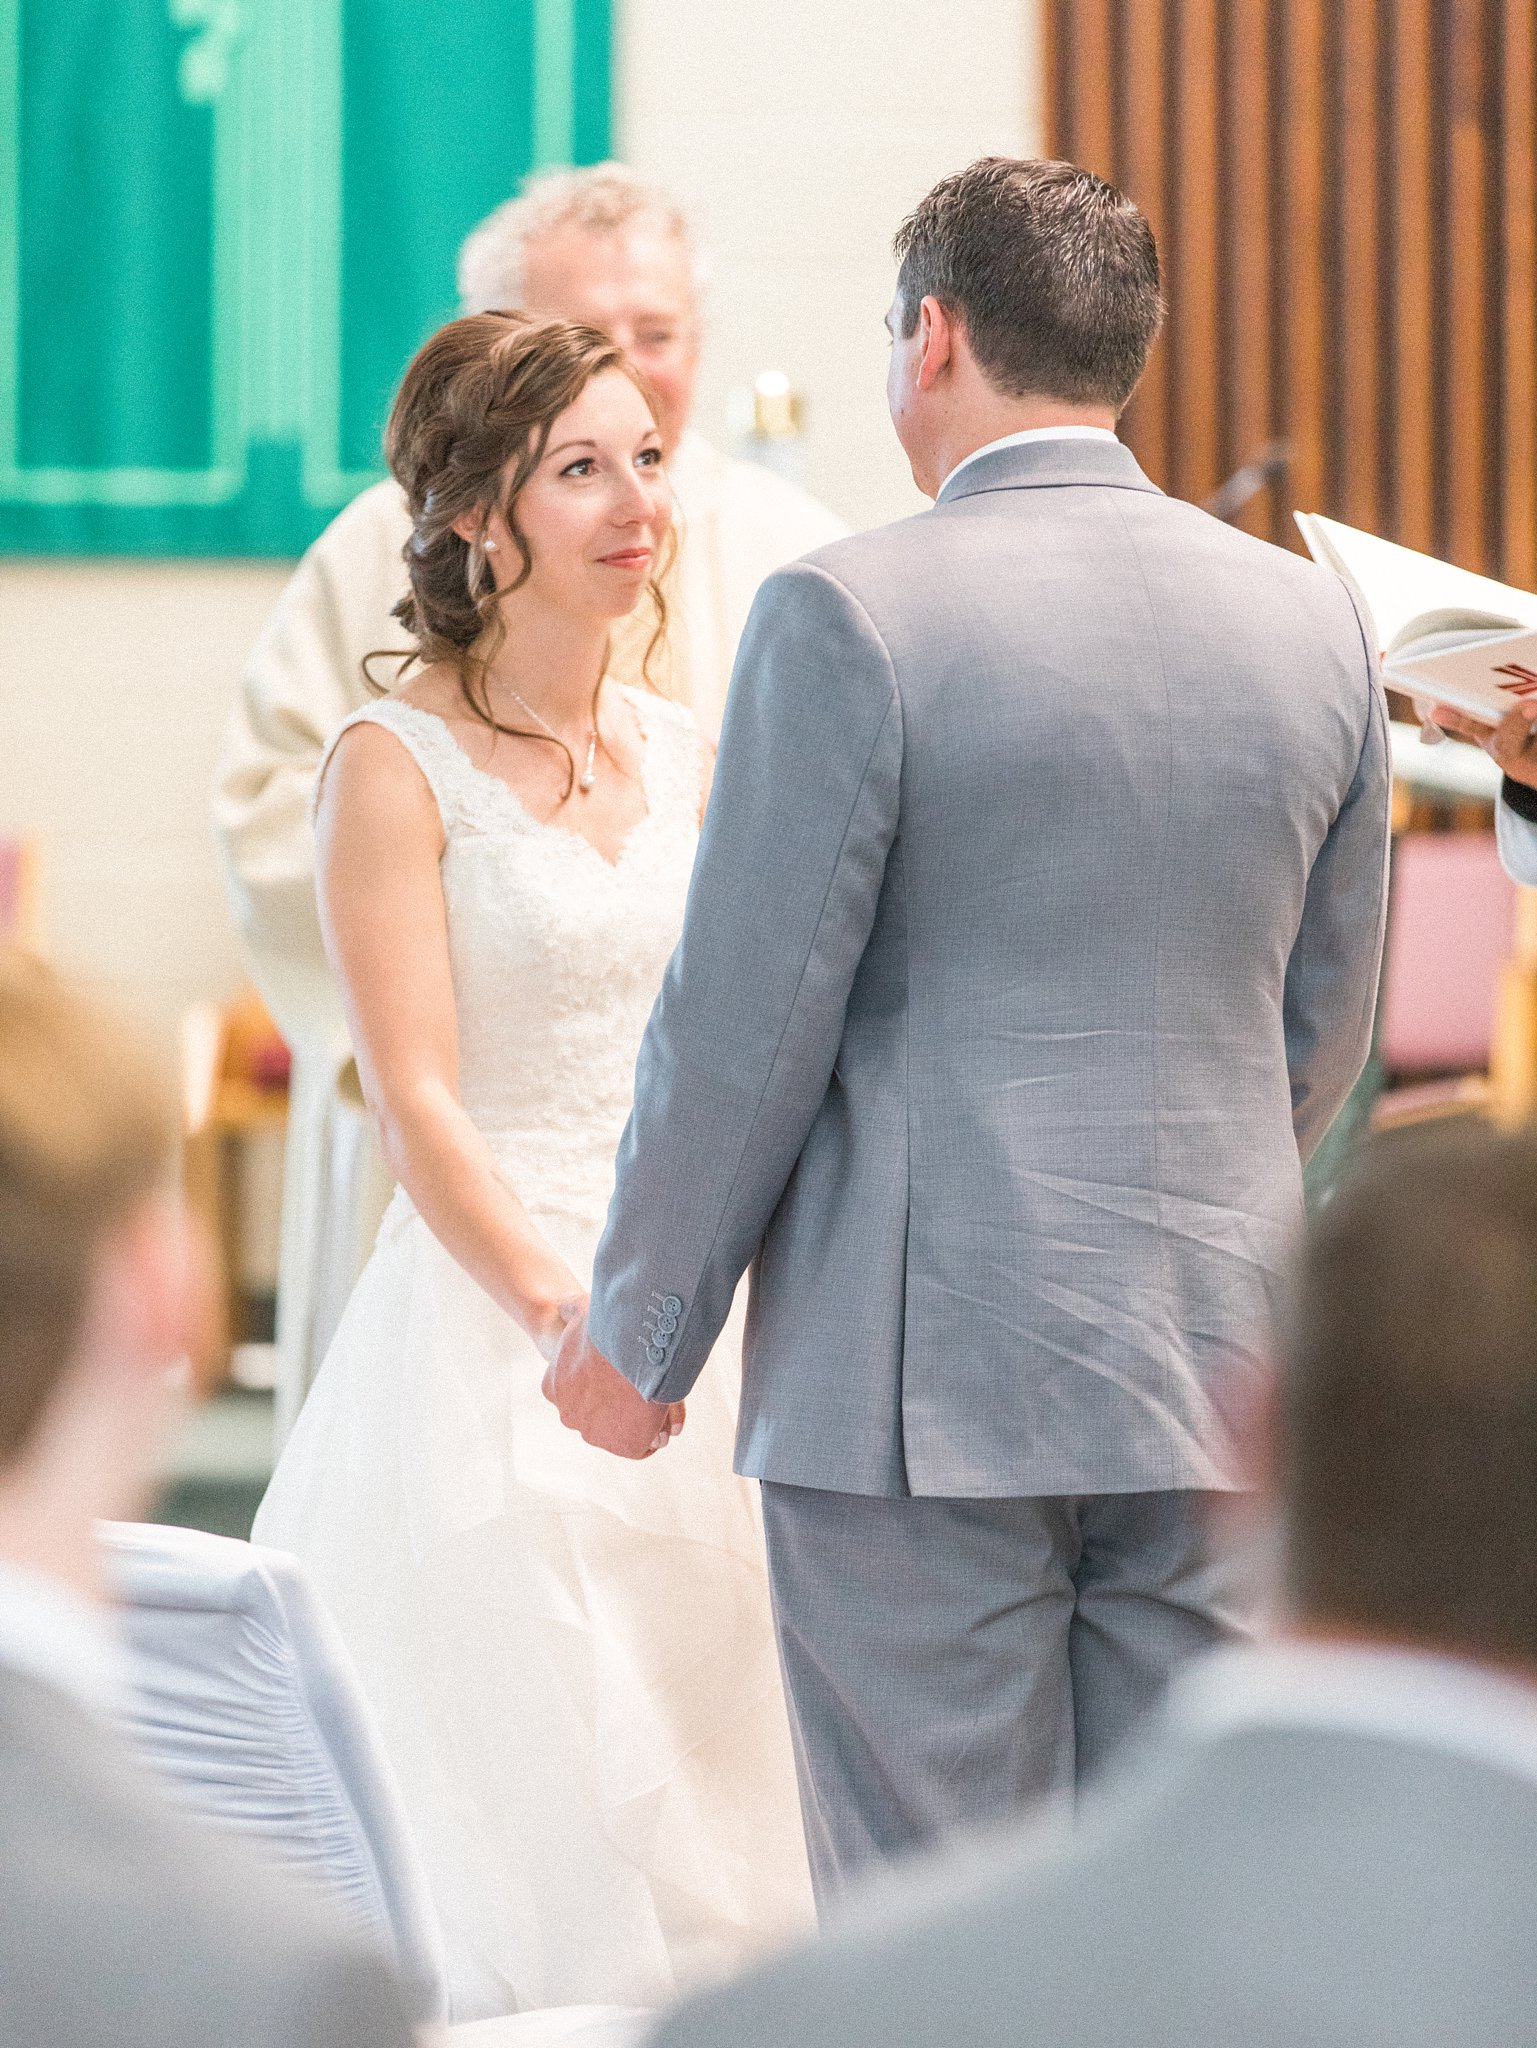 Exchanging vows in a catholic ceremony Hilton Garden Inn Ottawa Airport Hotel Wedding